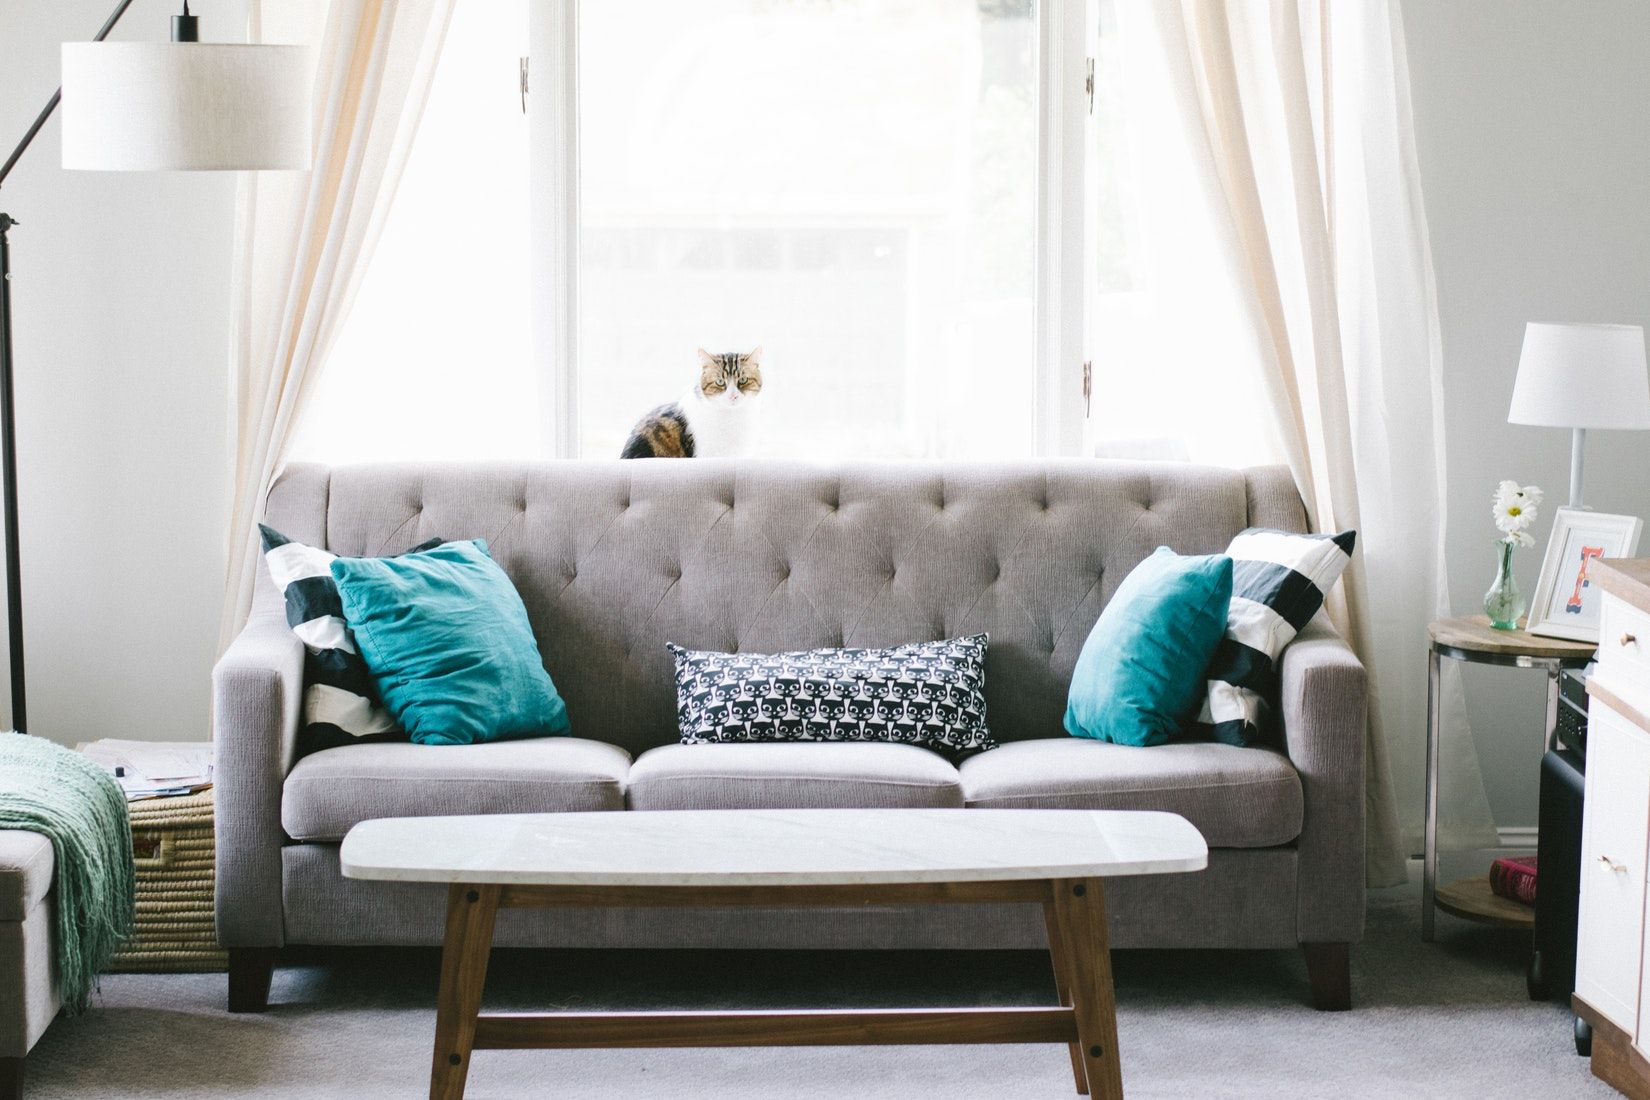 Here's Why You Need An Extended Warranty On Your Furniture